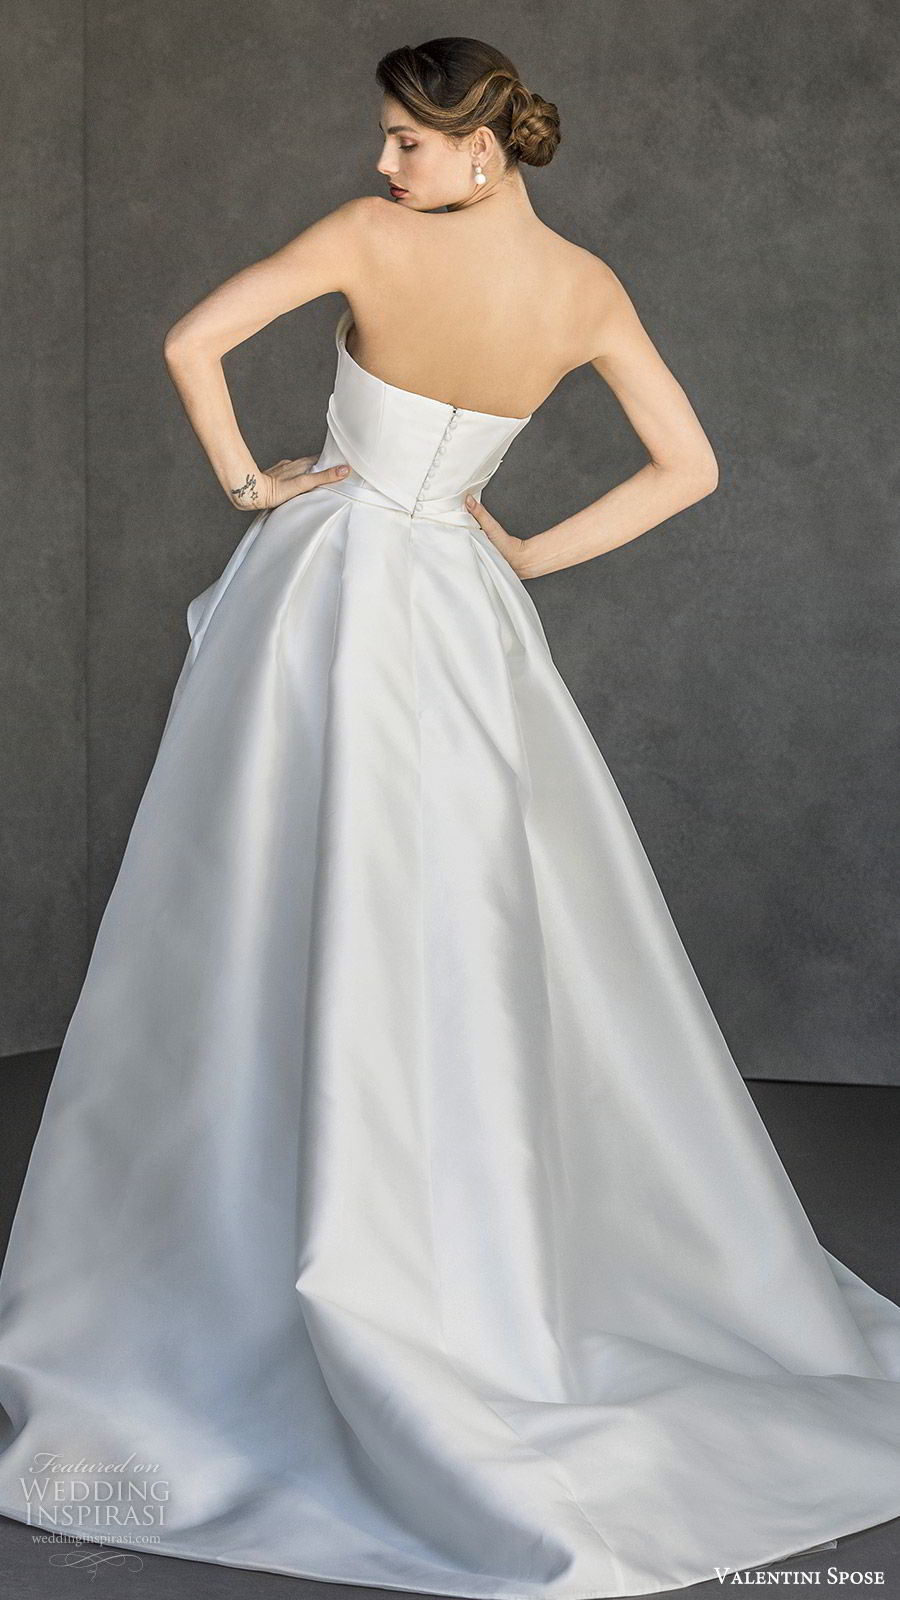 valentini spose spring 2020 bridal strapless asymmetric neckline high low skirt a line wedding dress (2) bow waist modern clean minimalist bv